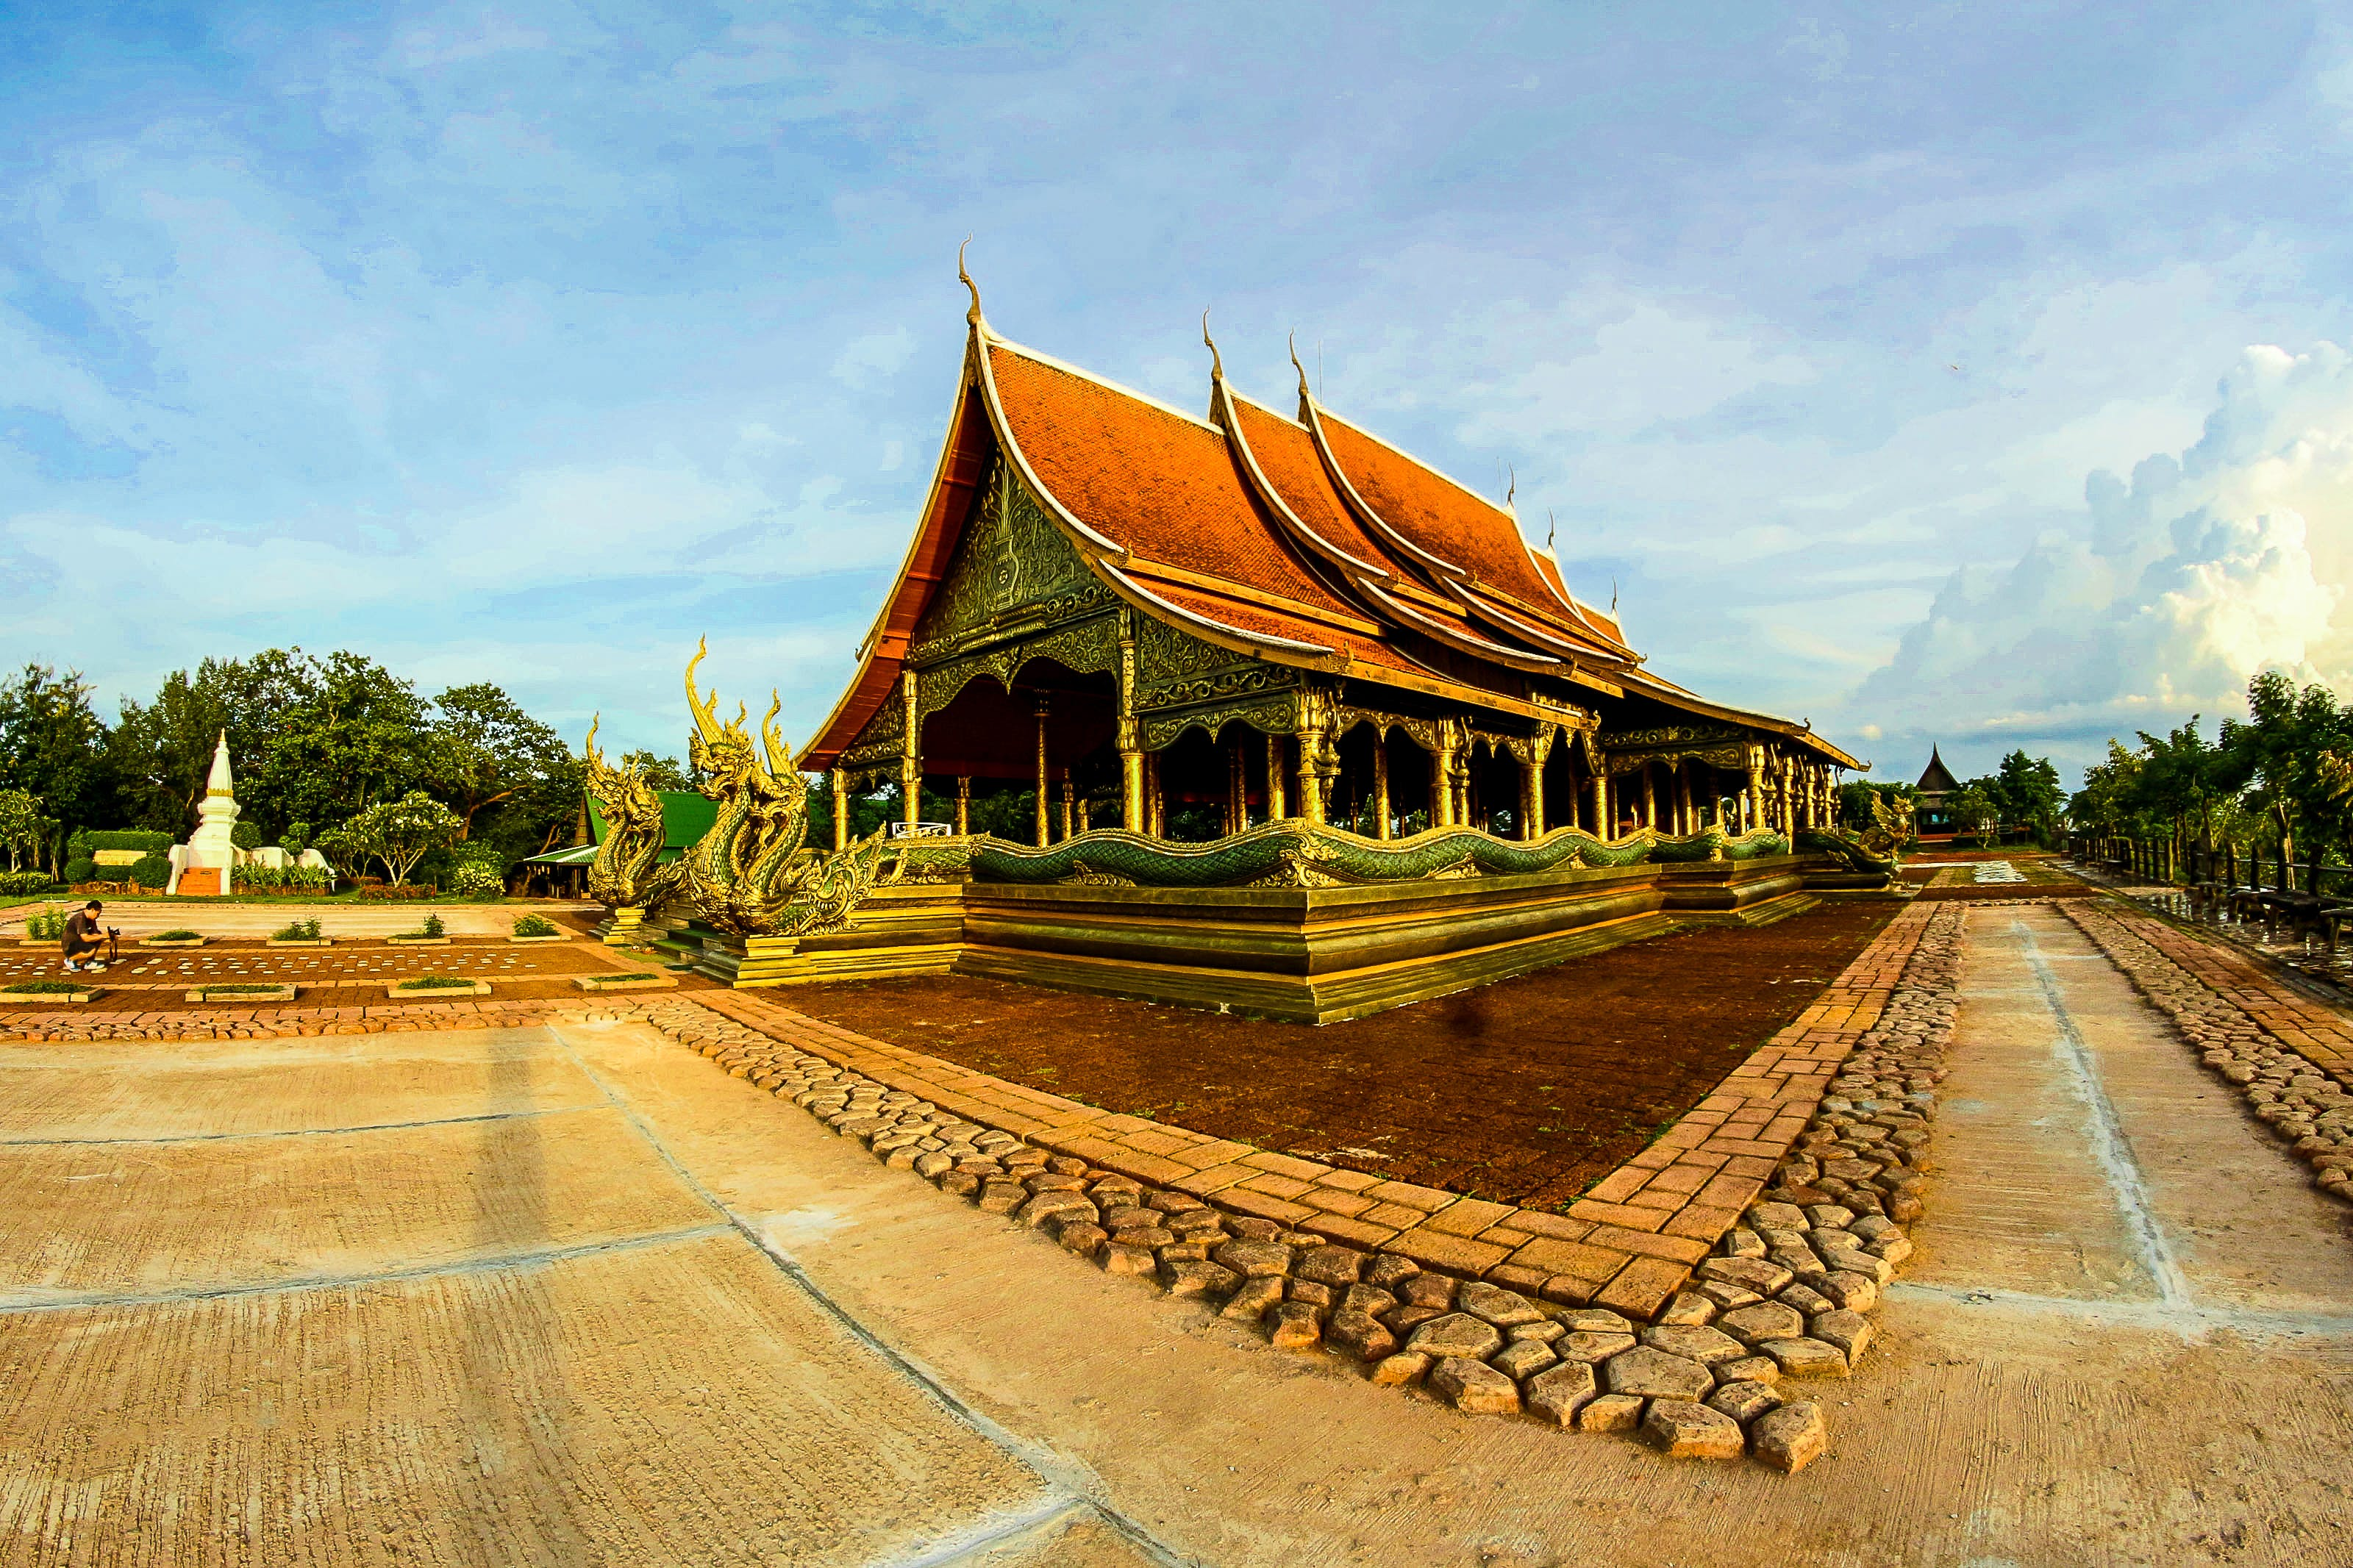 Brown Temple Under Cloudy Blue Sky